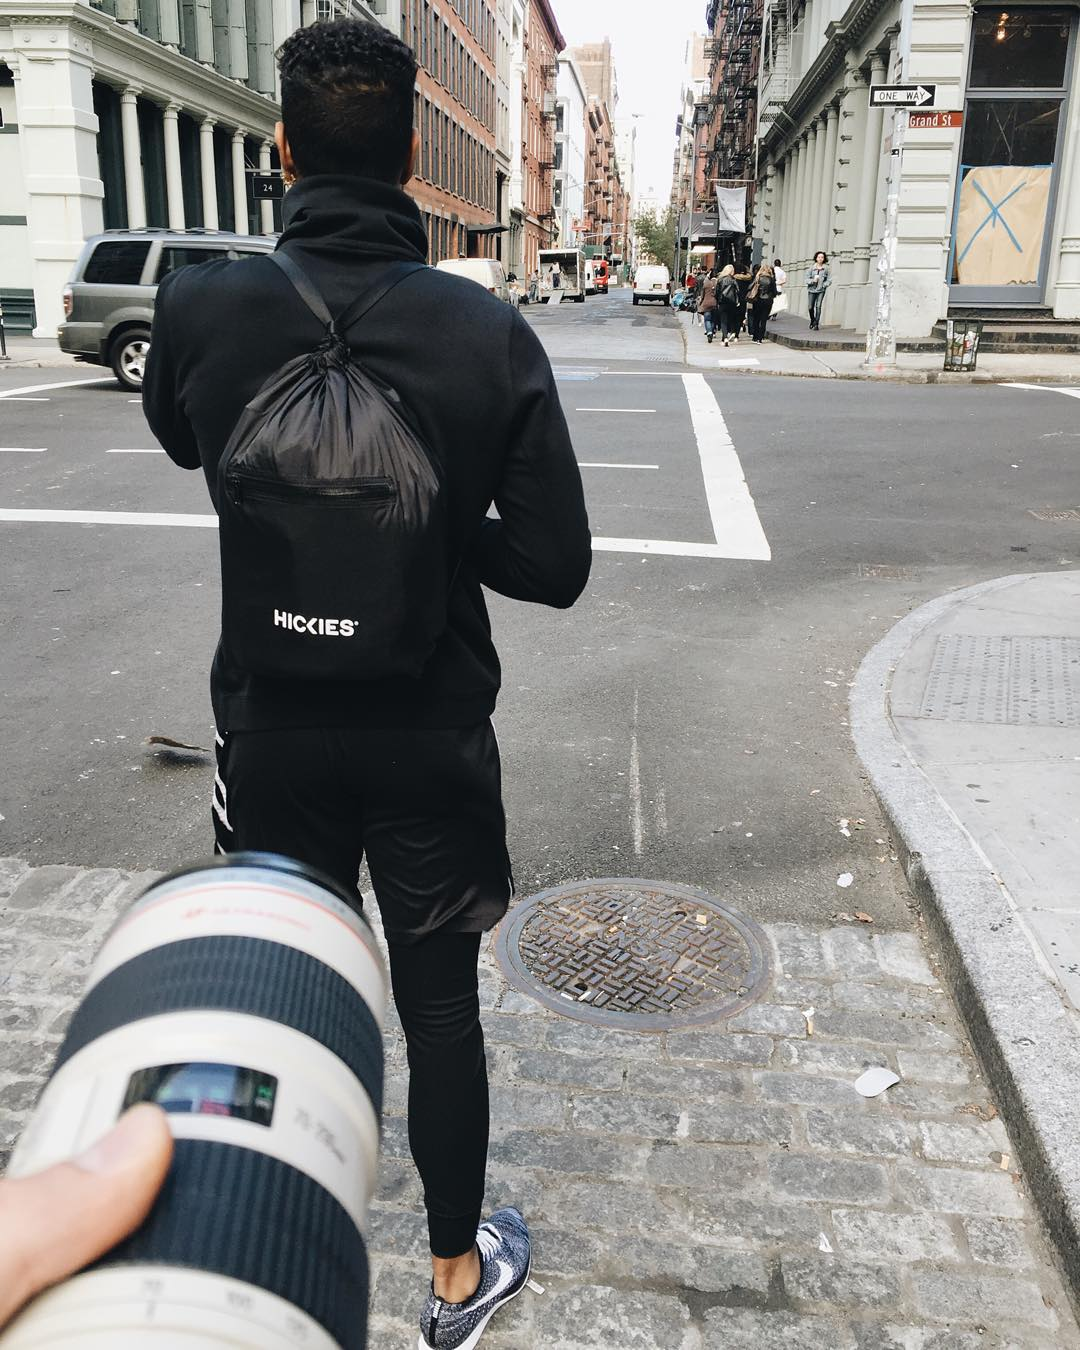 Hitting the streets for part one of our F/W men's shoot with something special on our backs.